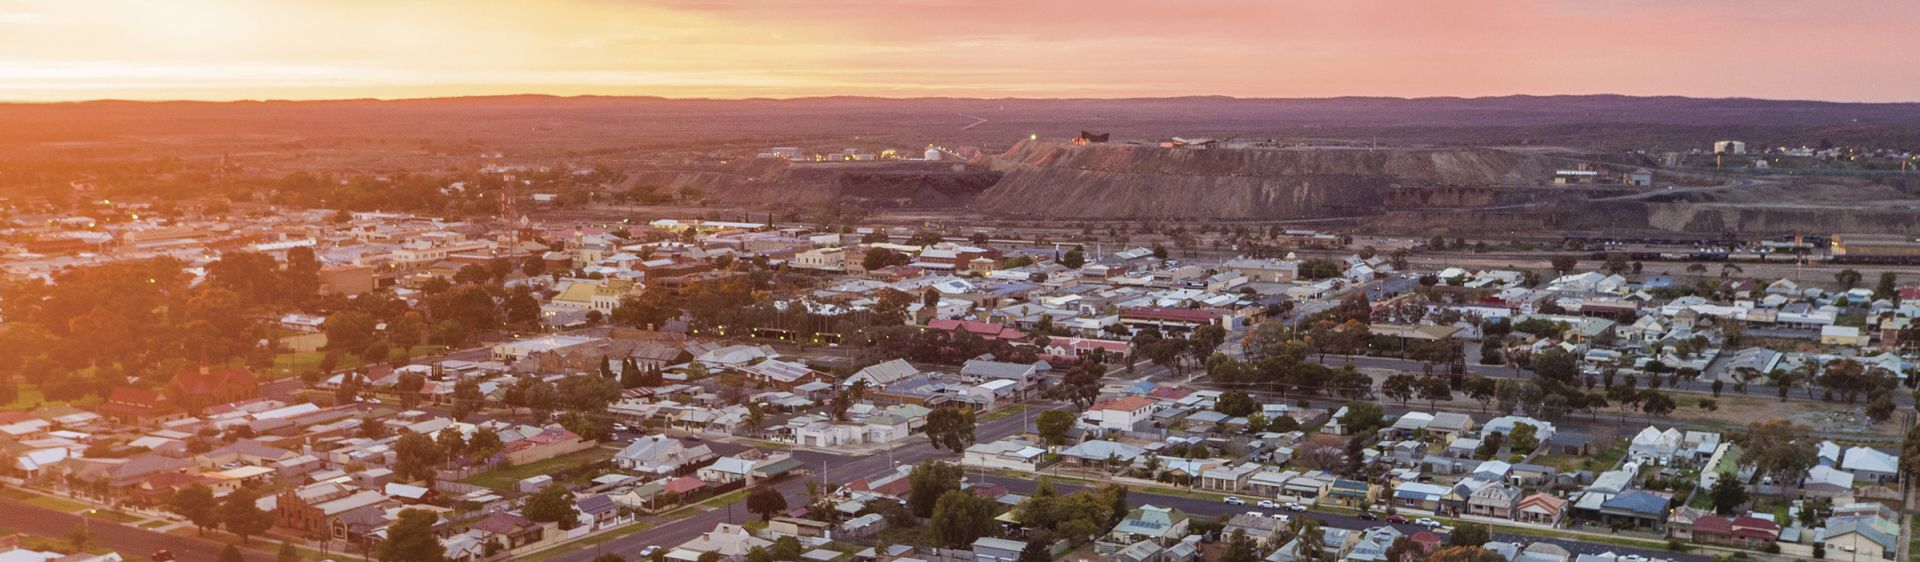 The sun rises over the town of Broken Hill